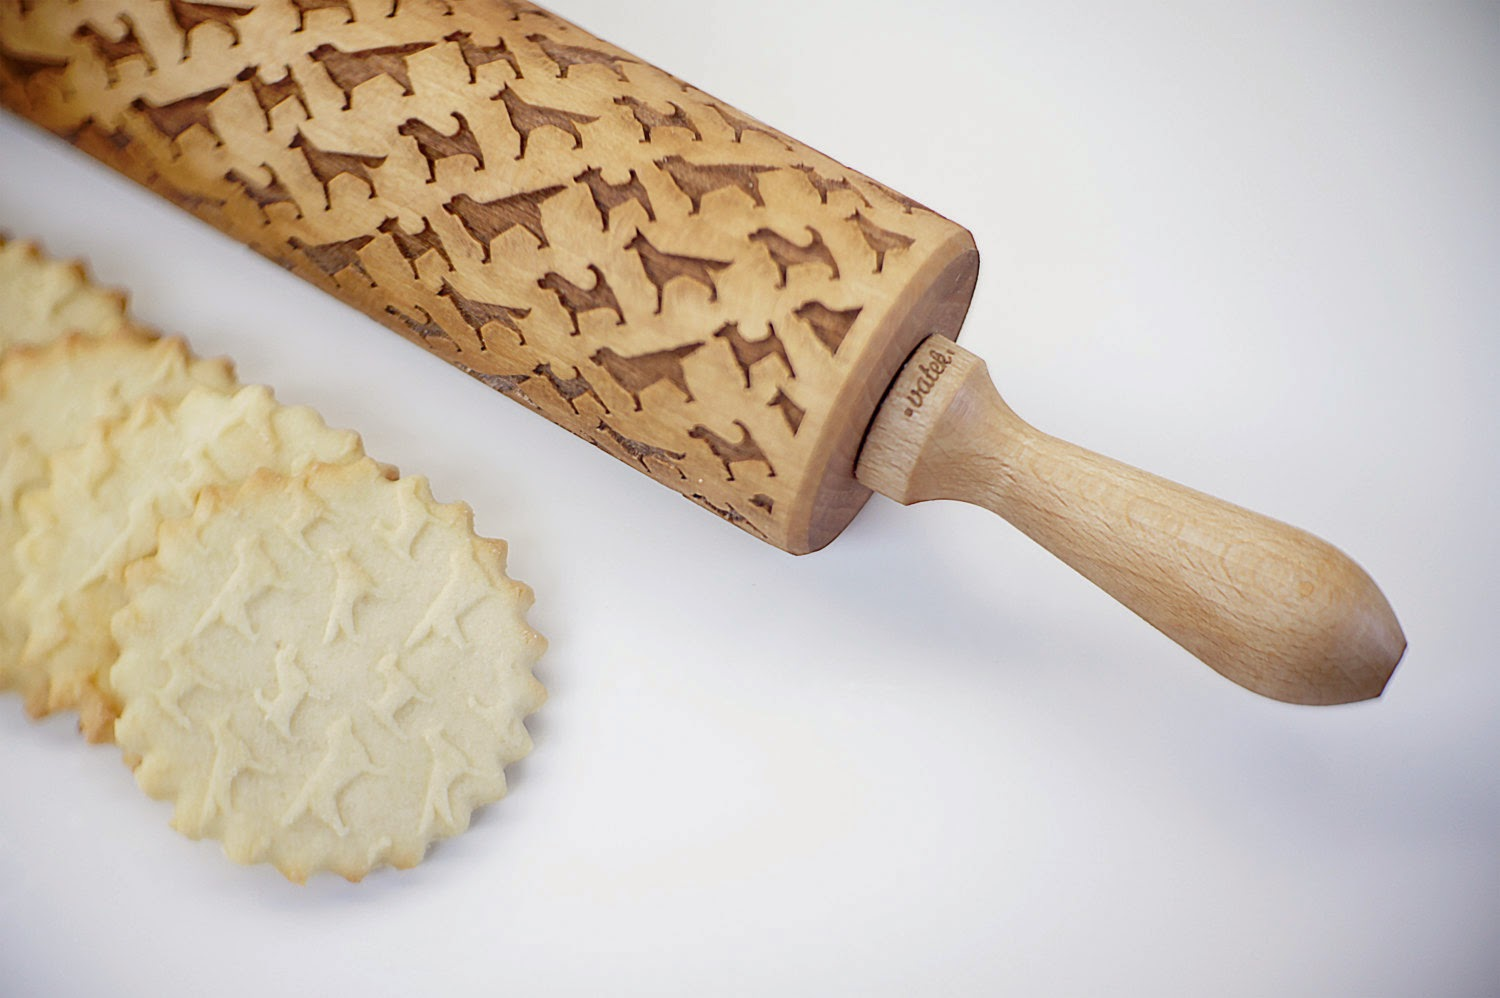 07-Zuzia-Kozerska-Rolling-Pin-for-Food-Stamp-Designs-www-designstack-co